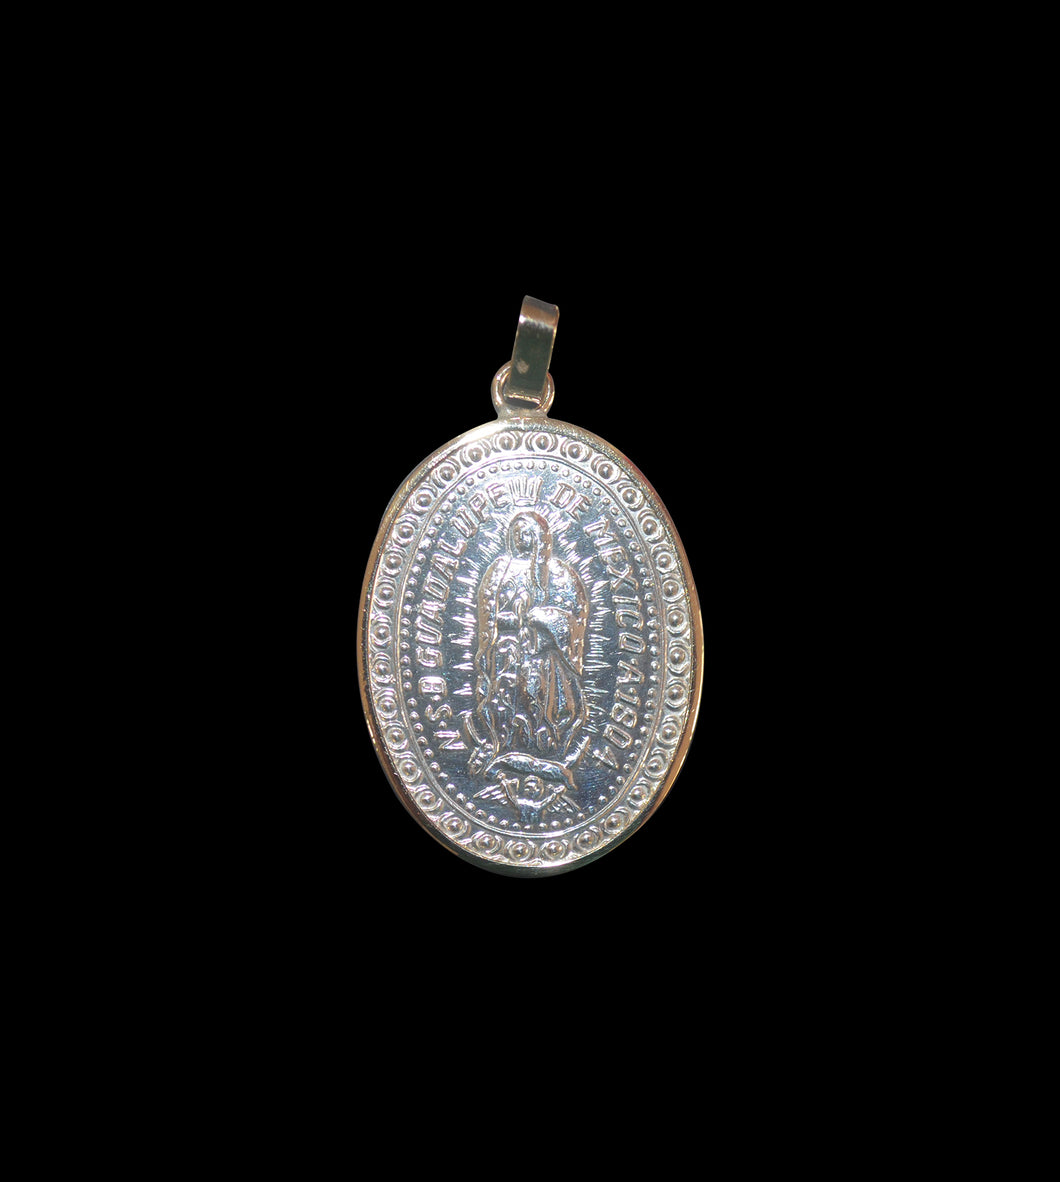 Medium silver Guadalupe Madonna medallion